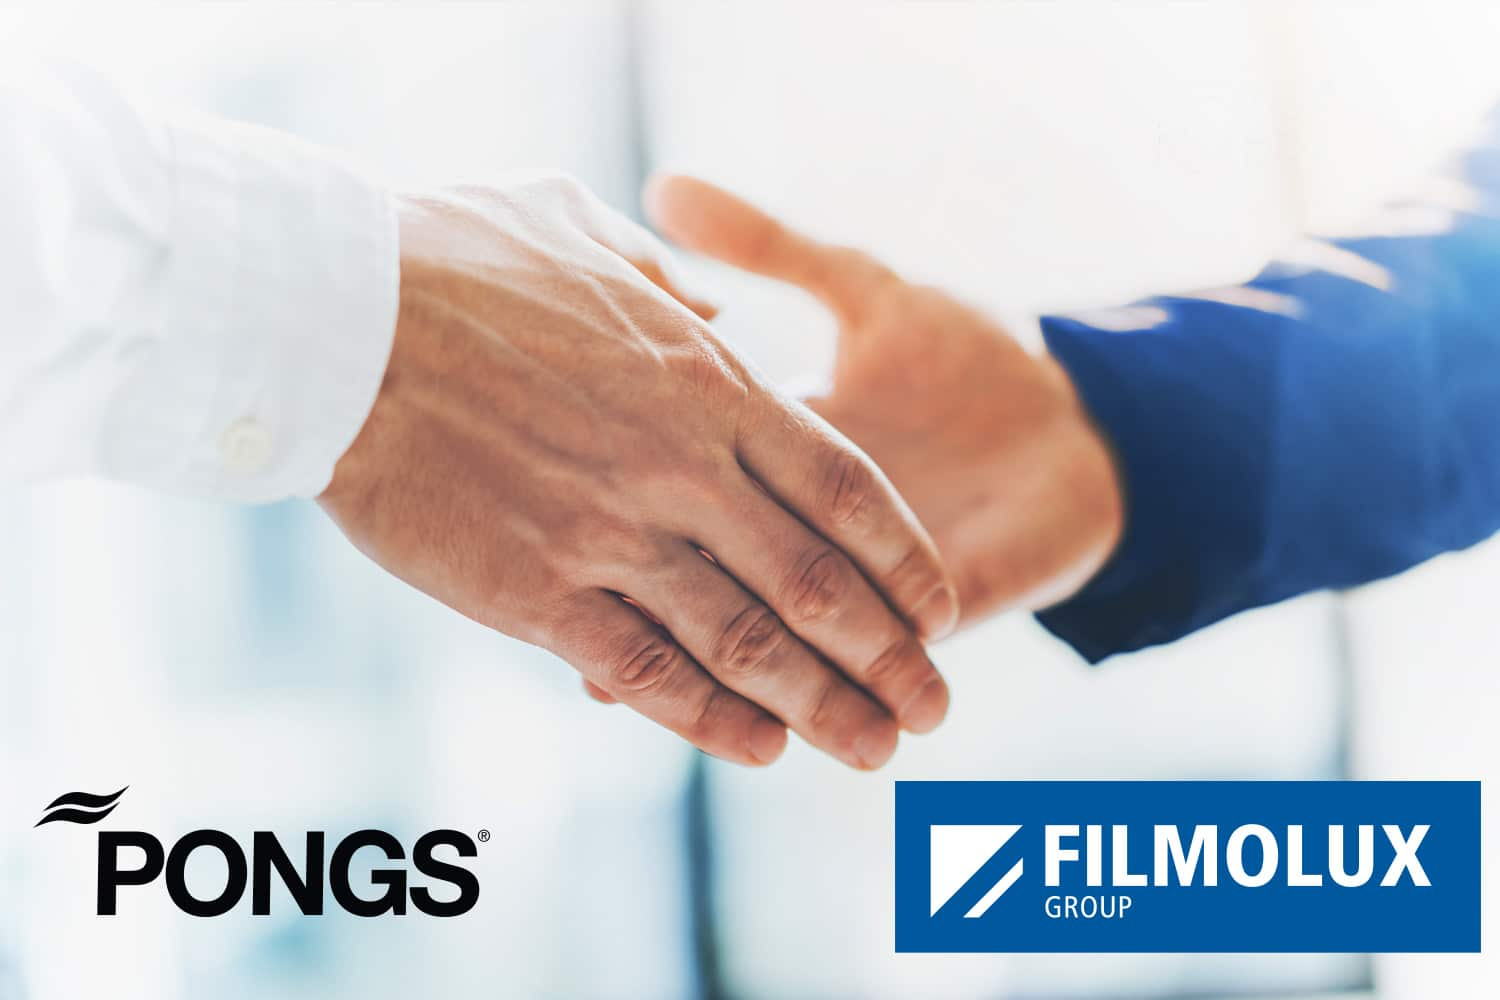 PONGS® | Cooperation with Filmolux Group